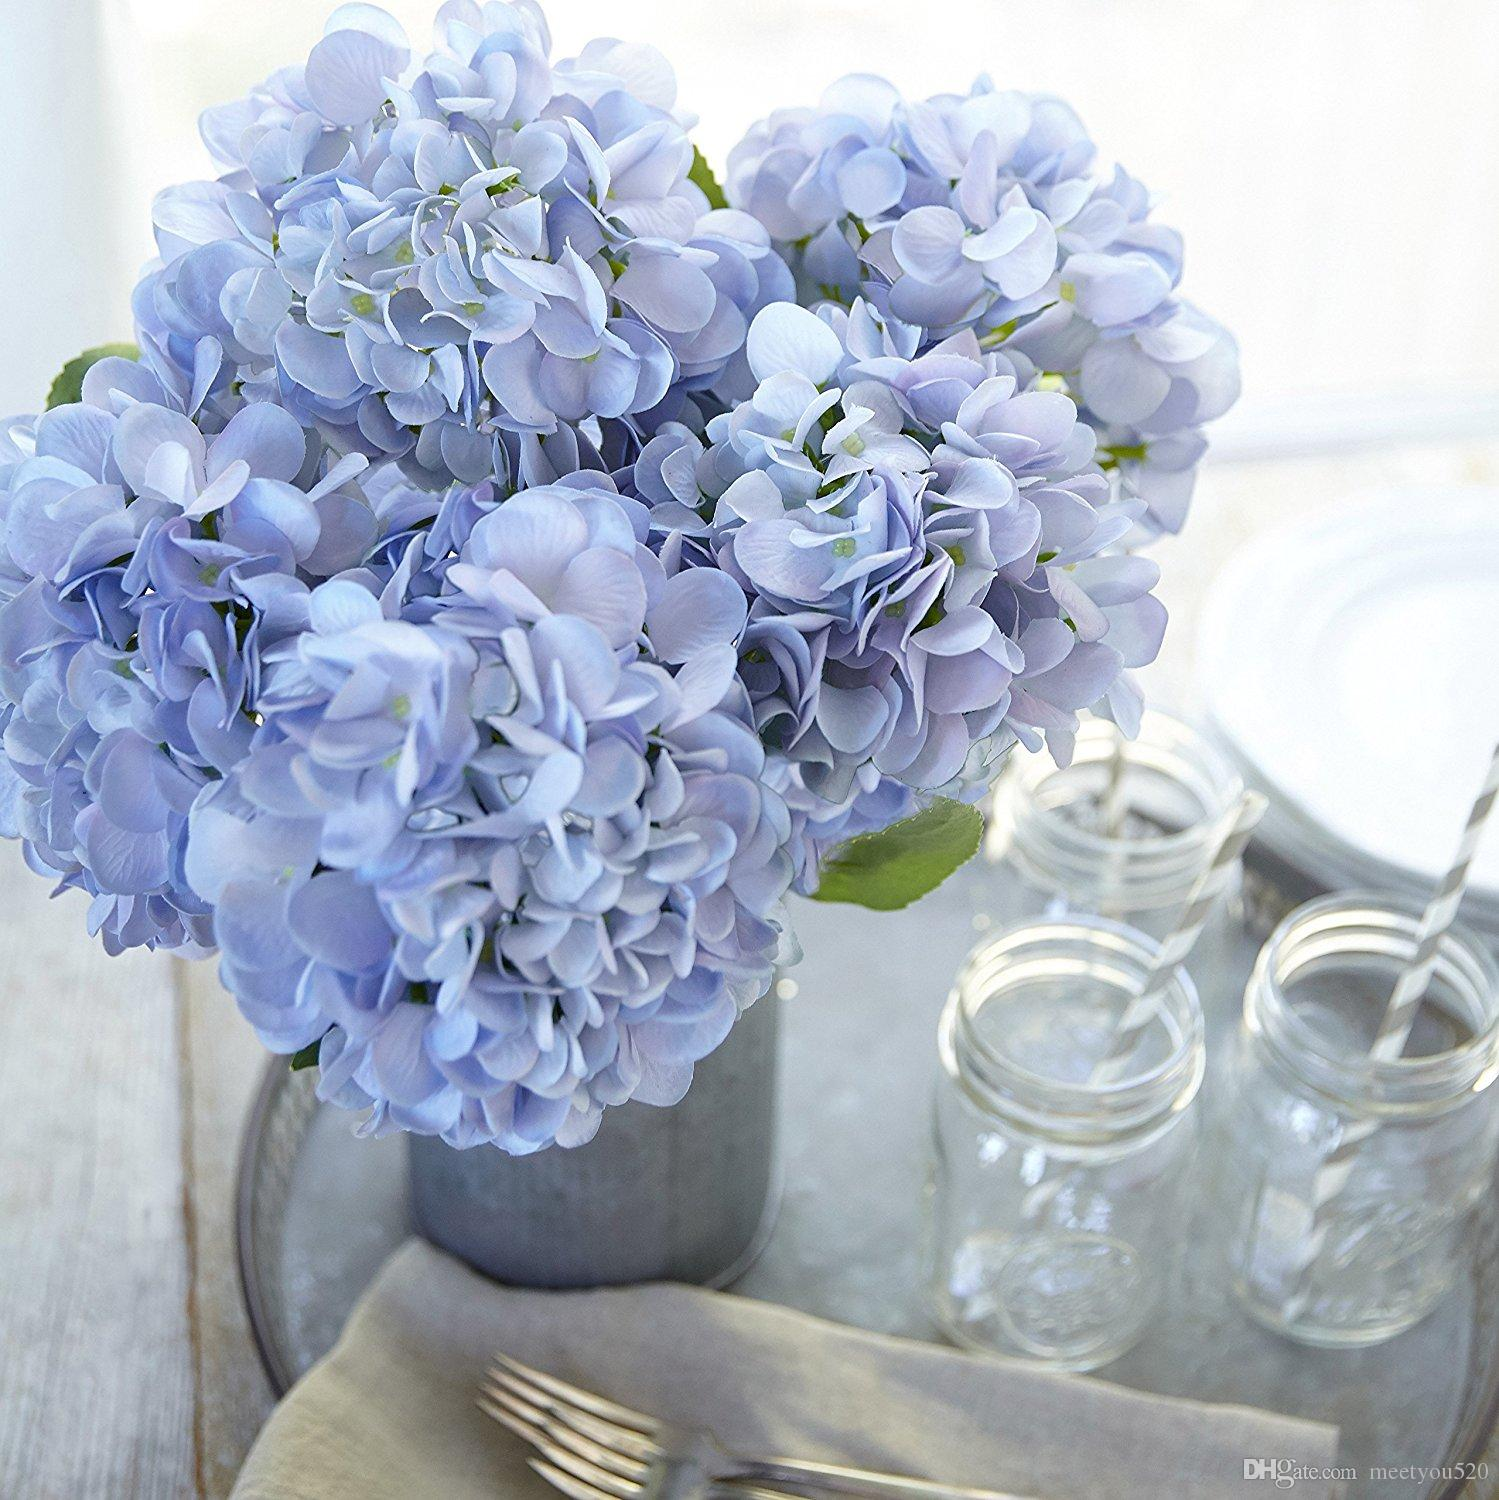 2018 artificial hydrangea silk flowers for wedding bouquet flower 2018 artificial hydrangea silk flowers for wedding bouquet flower arrangements blue color 5 stems bundle from meetyou520 2758 dhgate mightylinksfo